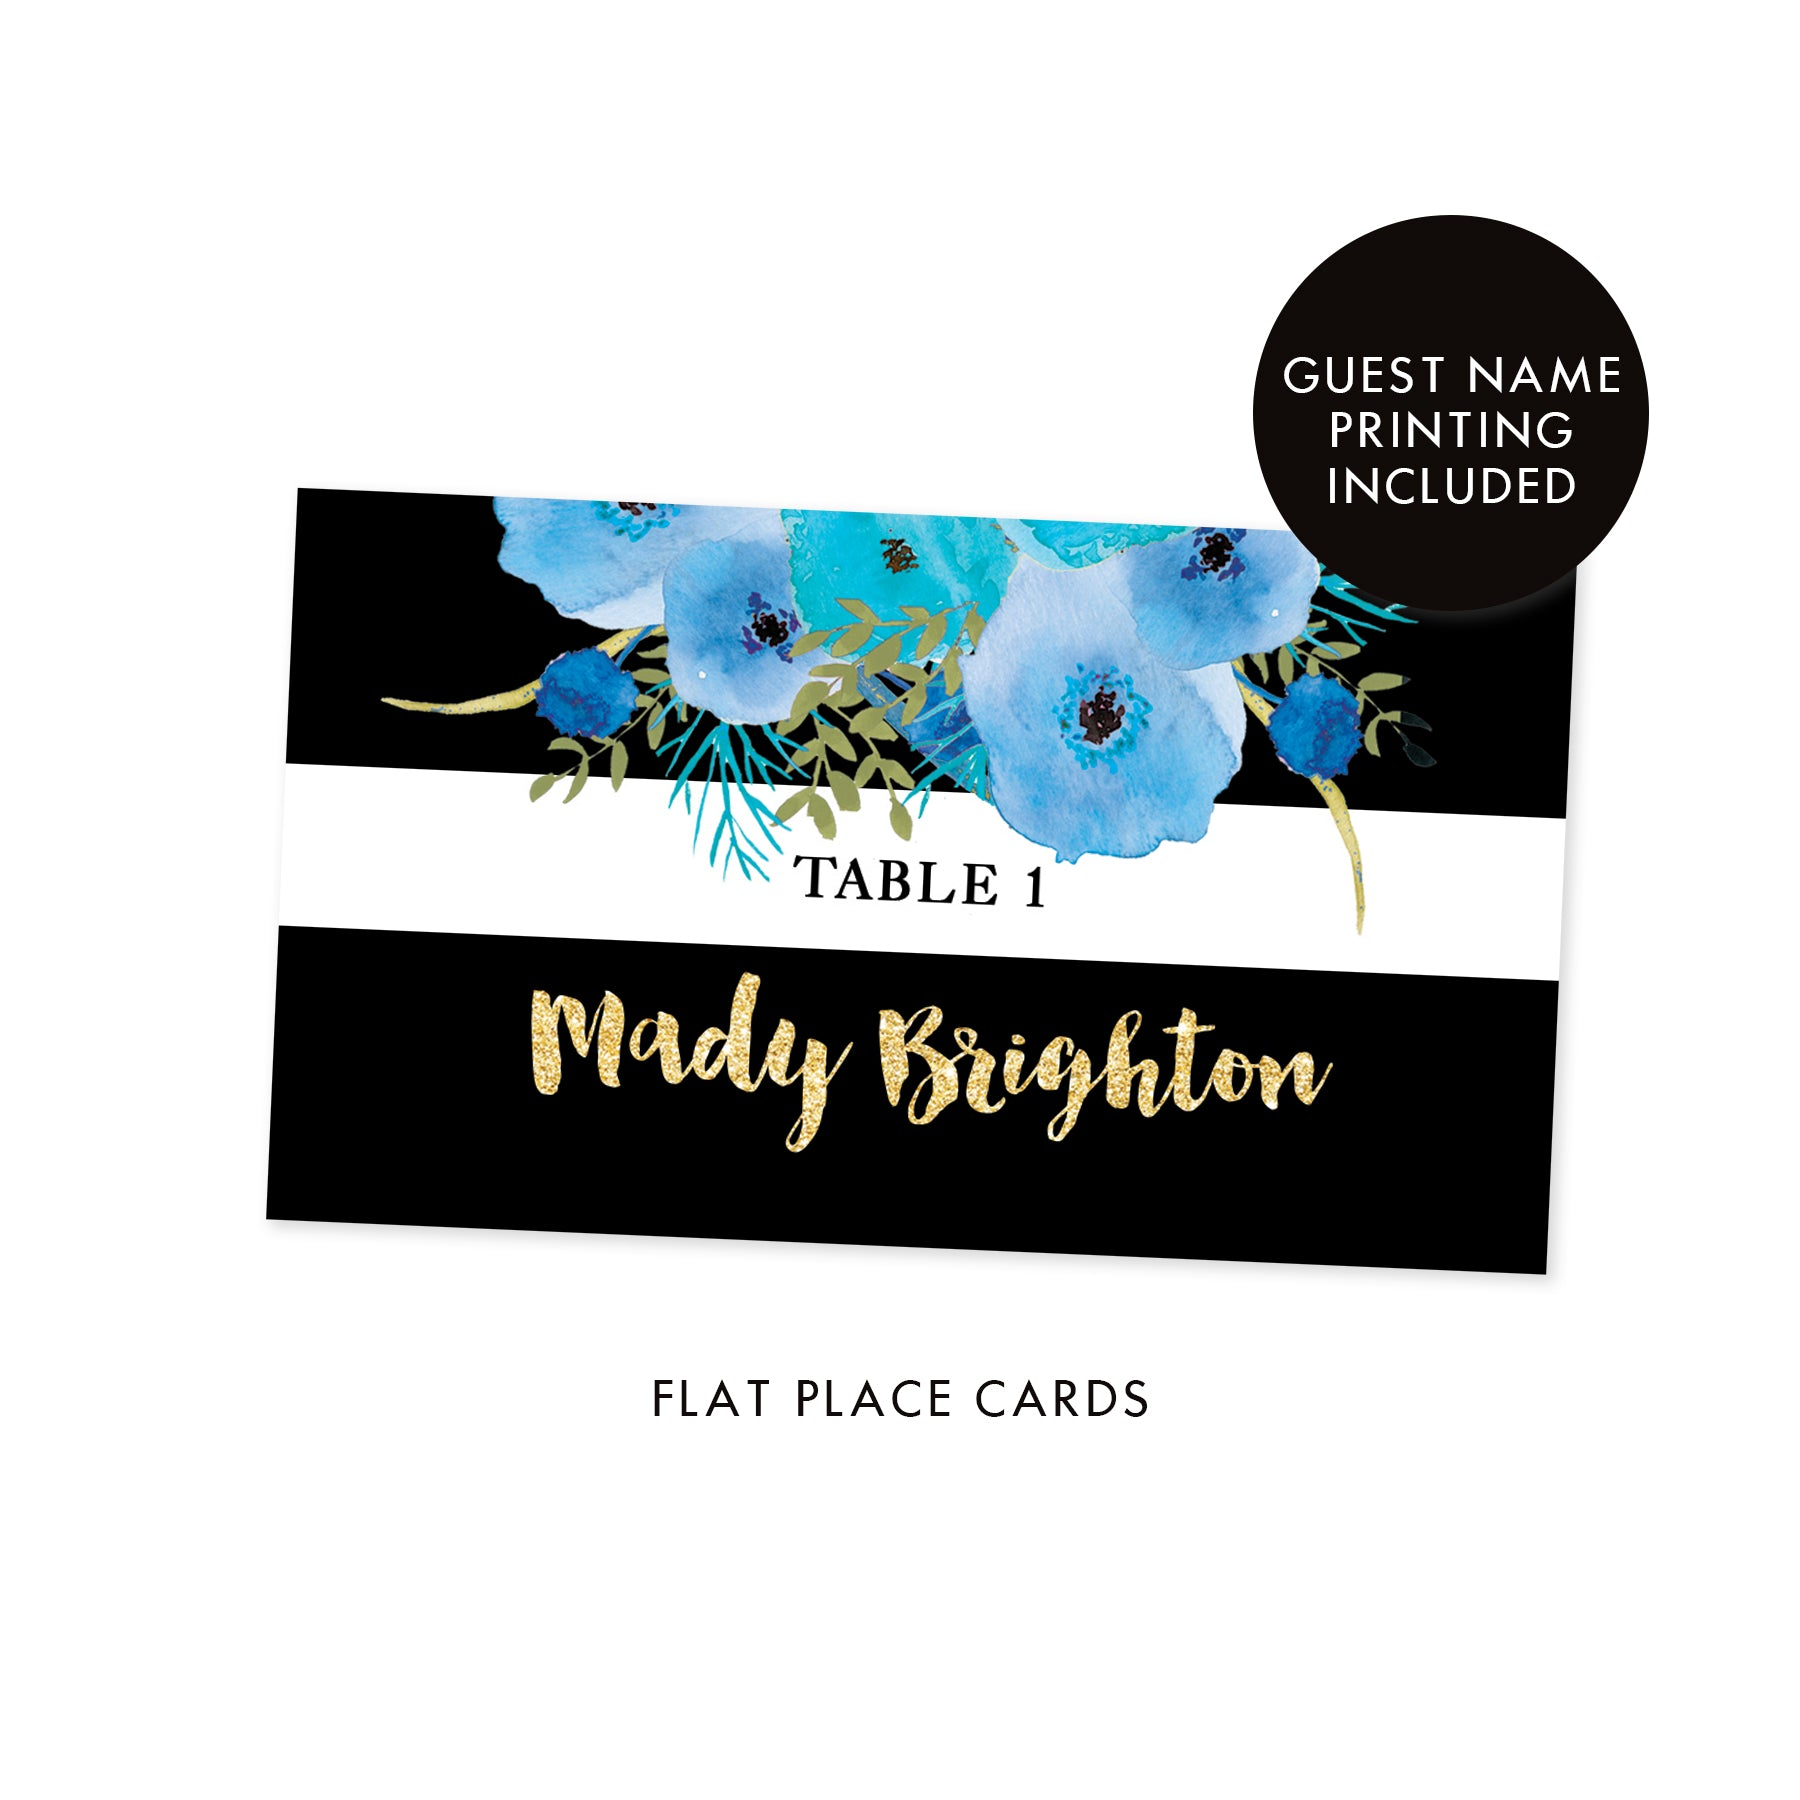 Black + White Striped Place Cards with Blue Flowers | Mady